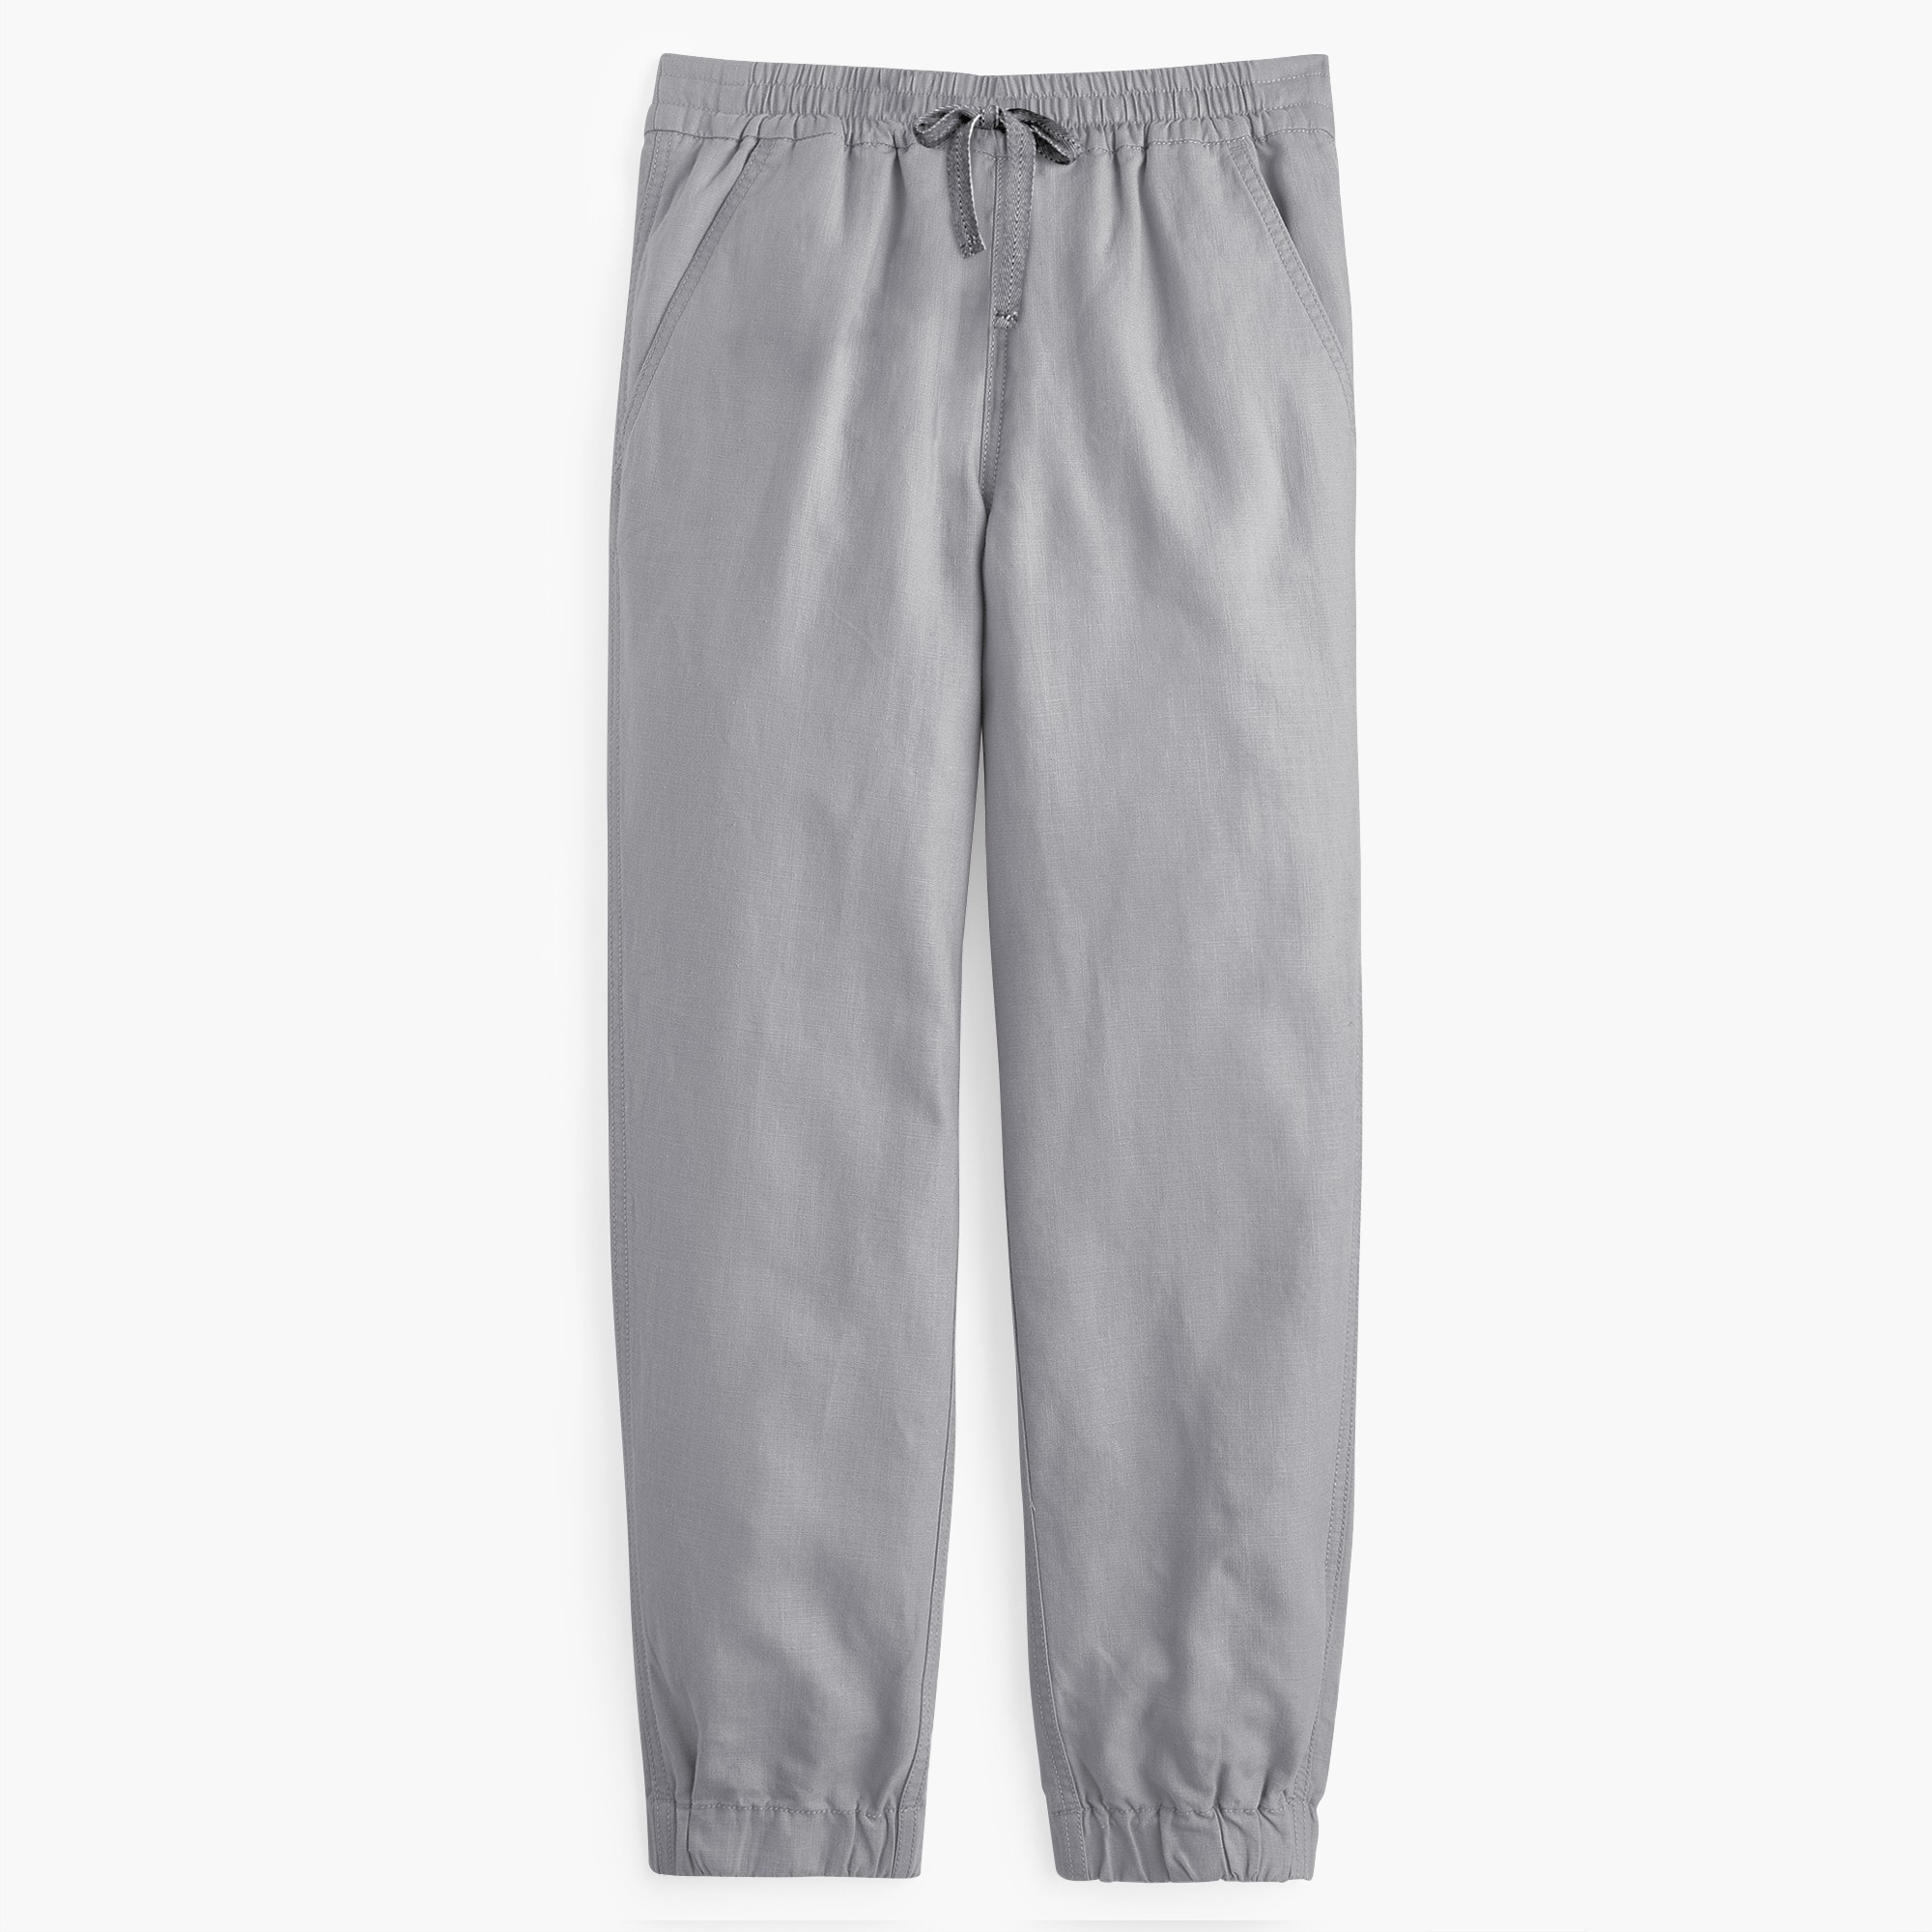 Point Sur seaside pant